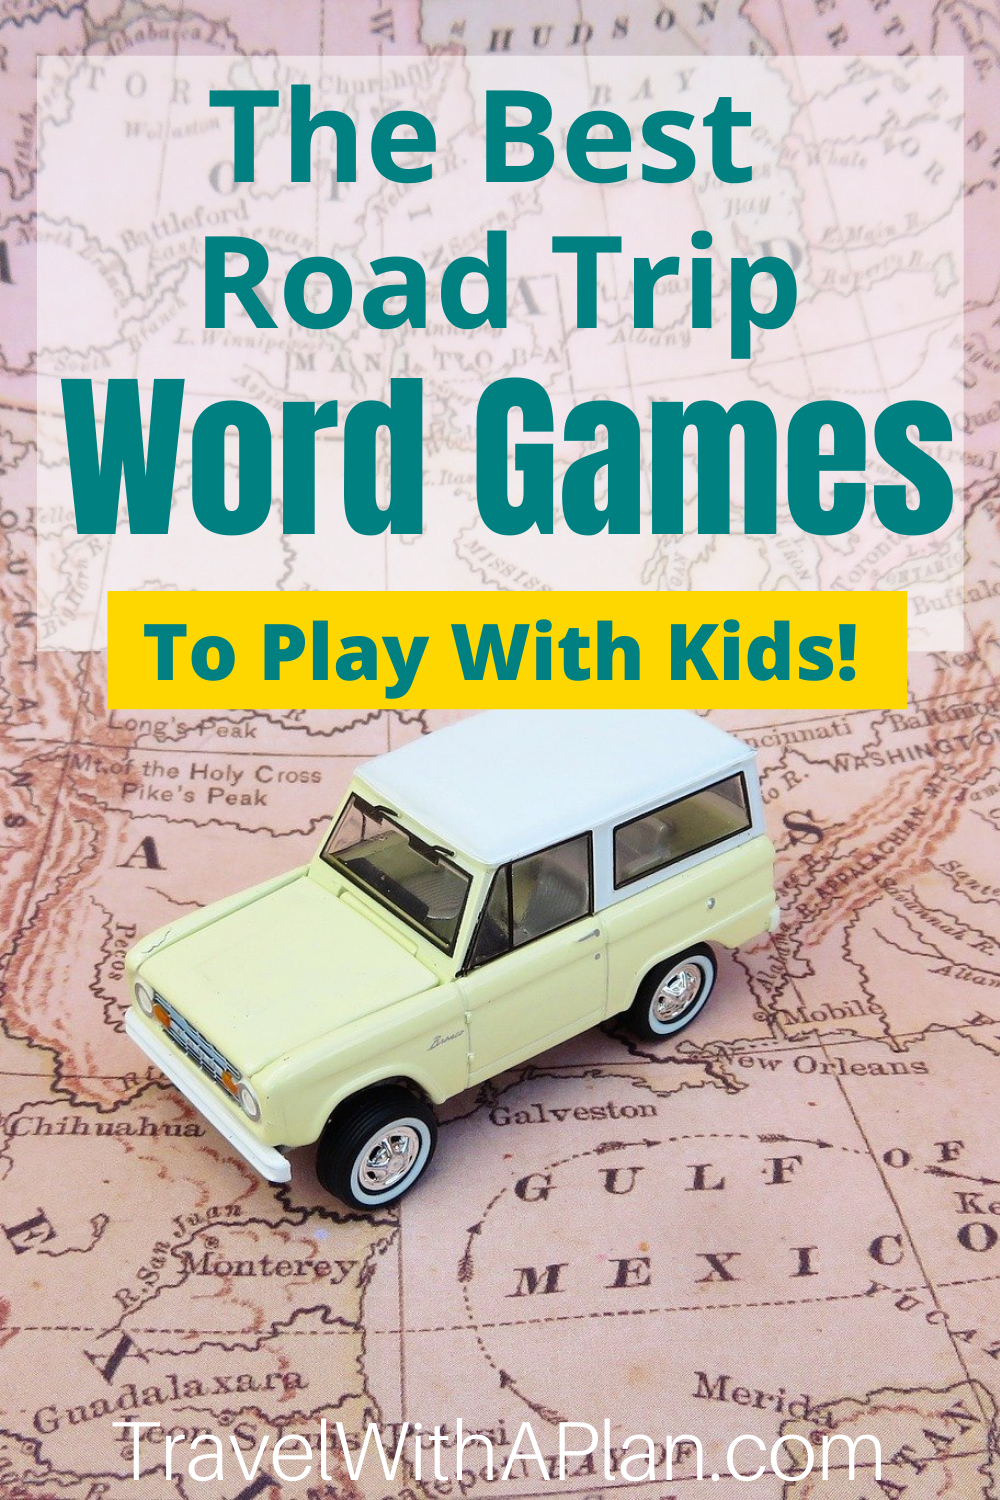 Read here for directions on how to play 13 different & easy word games while driving in the car with kids!  Whether you're on vacation or just out for a Sunday drive, these road trip games create fun and family memories!  Road Trip Activities | Things to do for kids | Family Travel | #roadtriptips #gamesforkids #gamestoplayinthecar #travelgames